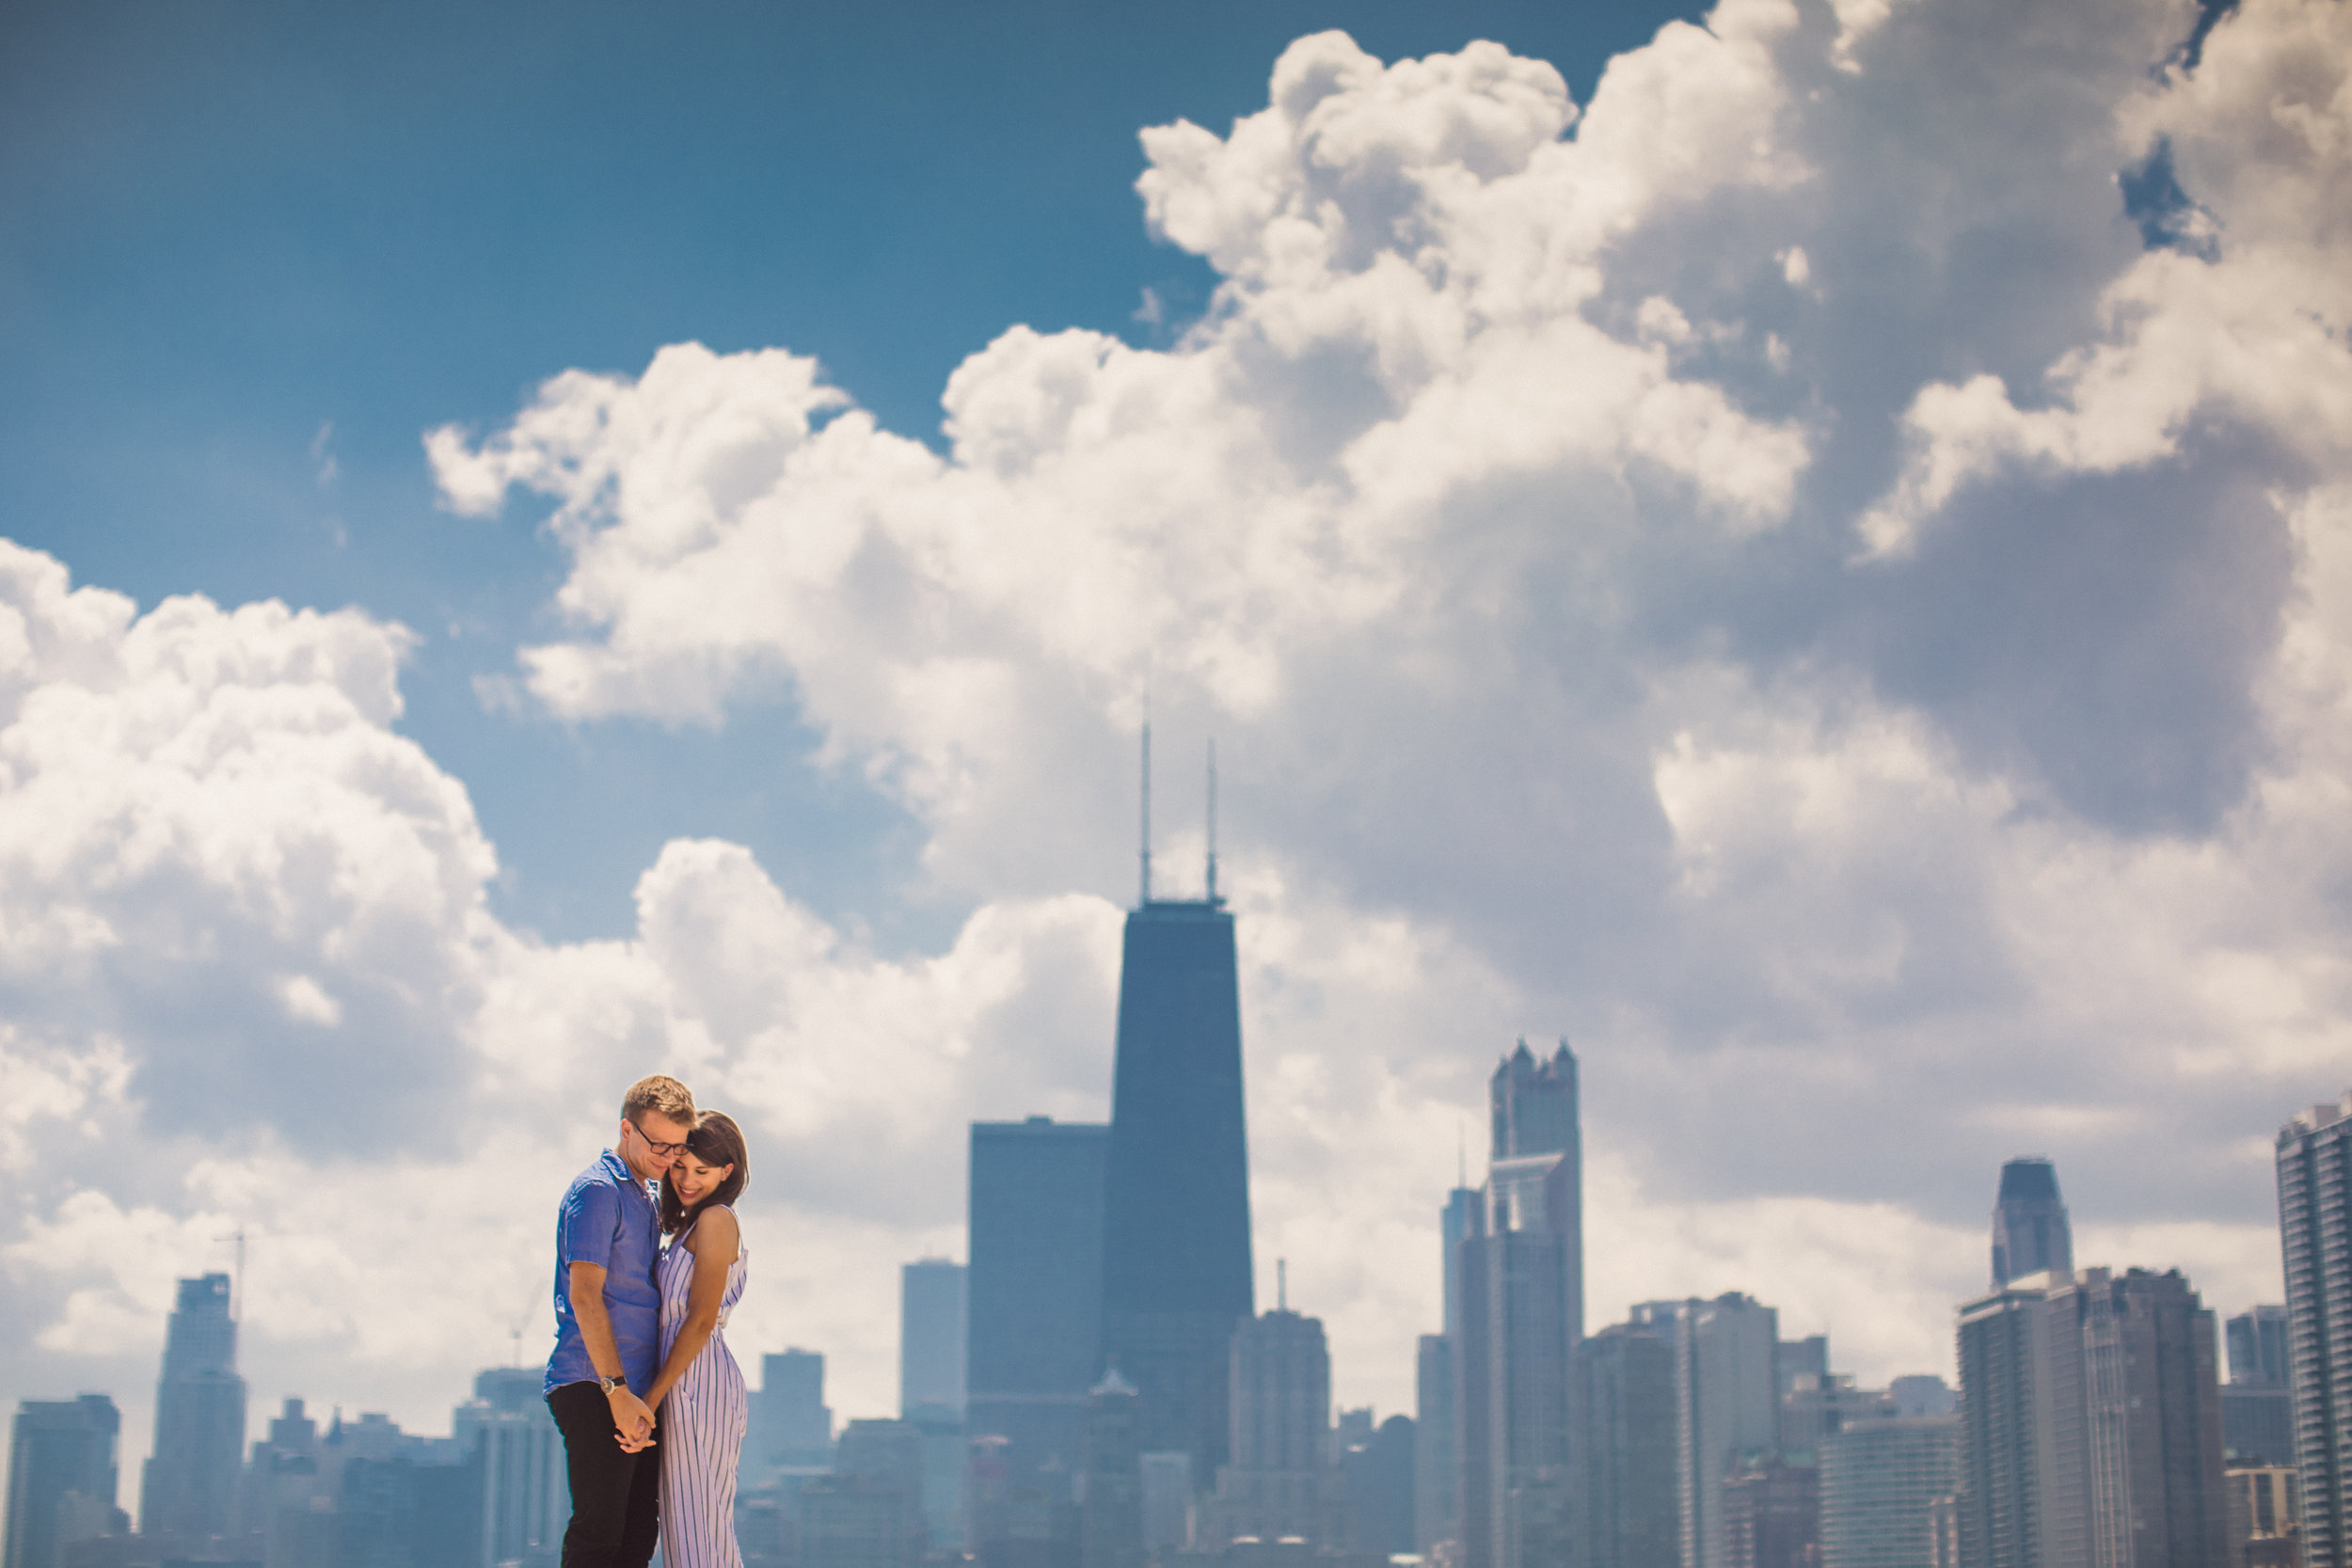 Fun and colorful Chicago engagement photo session captured by Henington Photography. See more engagement photo ideas at CHItheeWED.com!